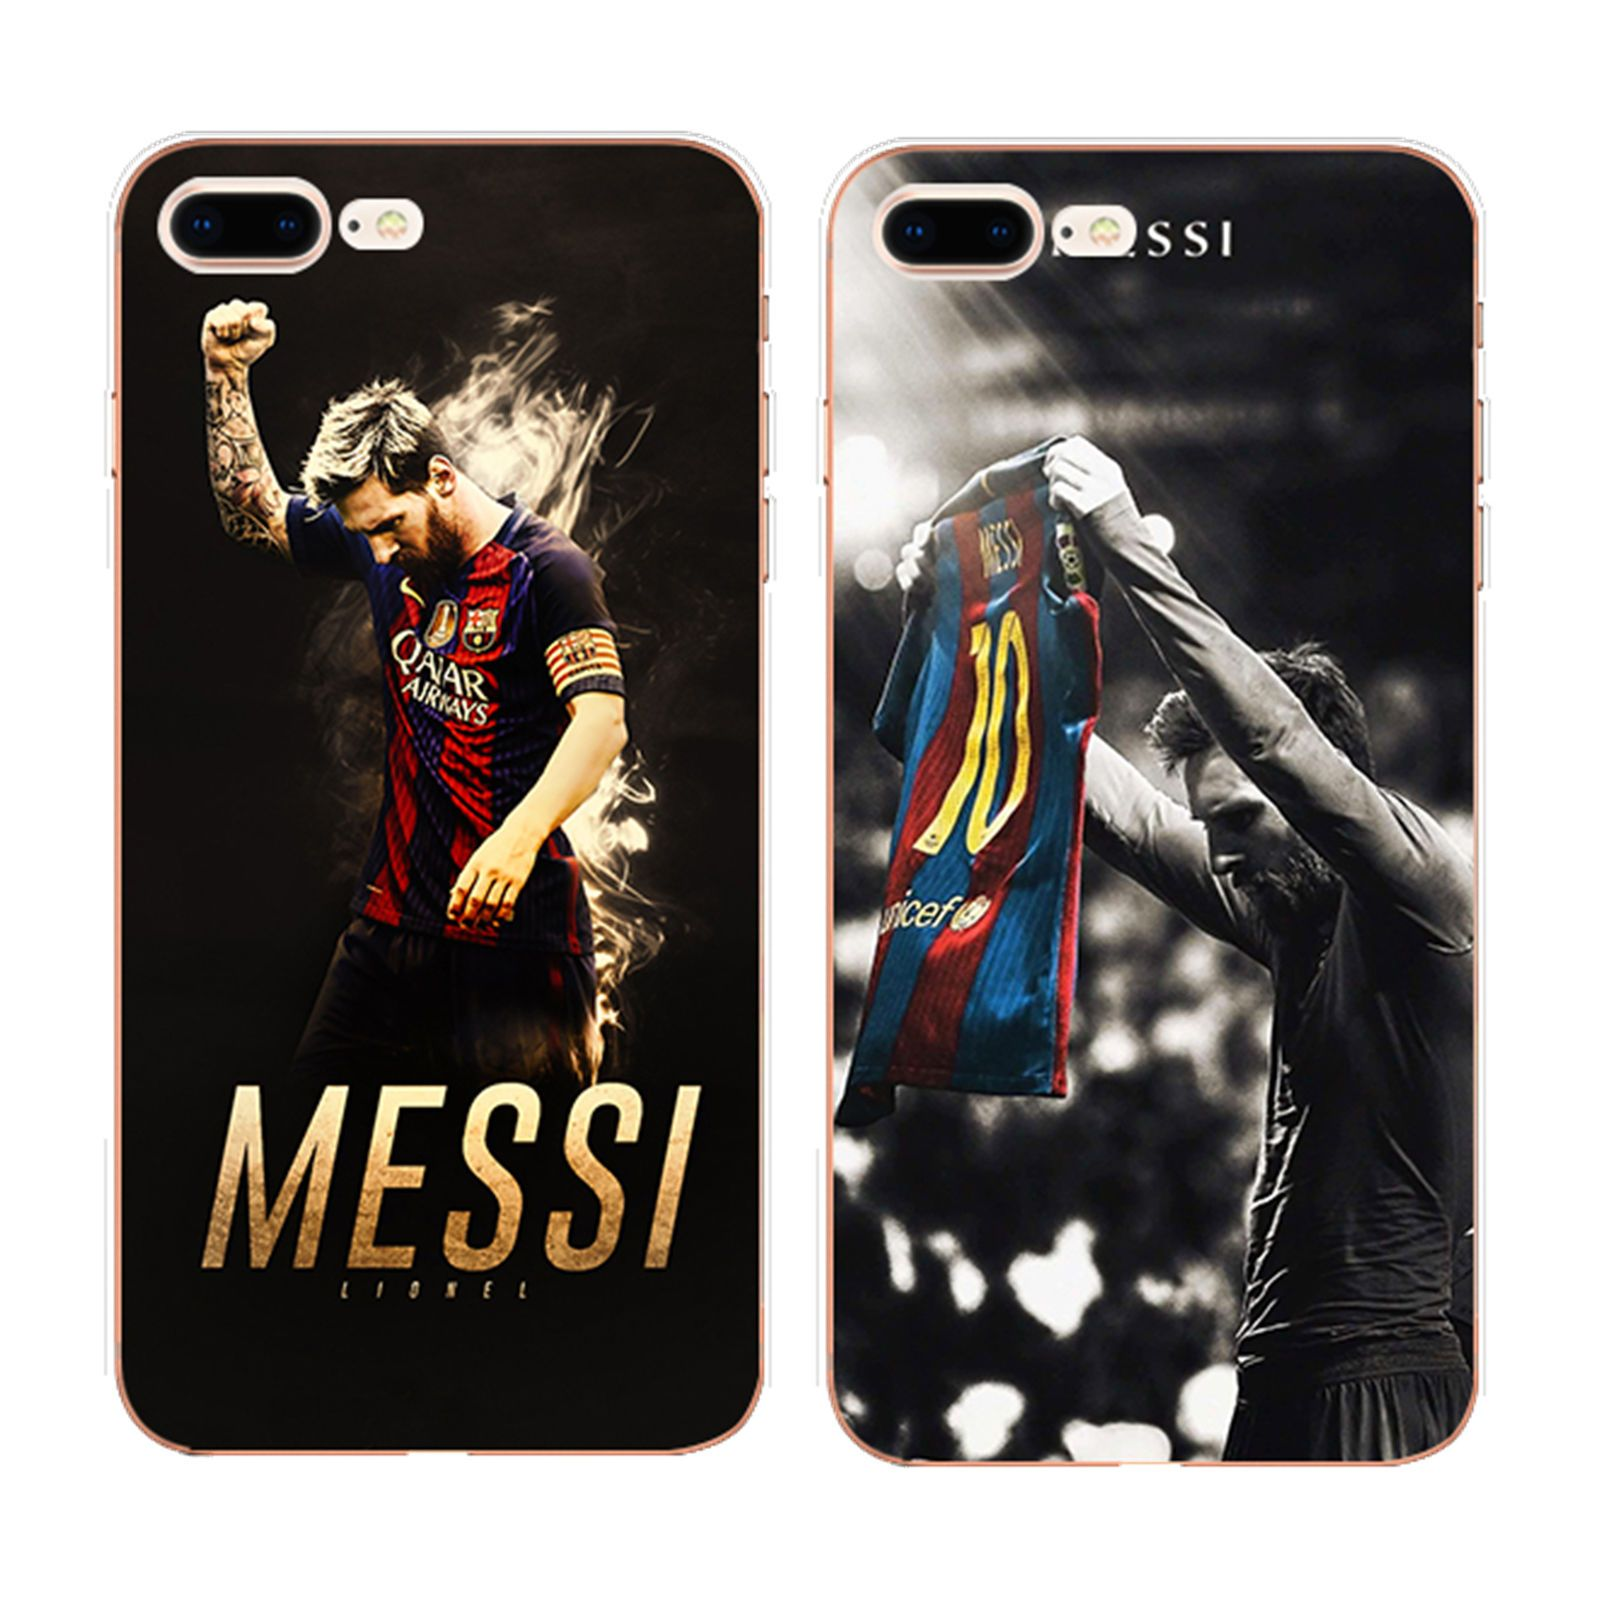 43f8be0cd  3.99 - Football Club Barcelona Lionel Messi Case Cover For Iphone Se 5 6S 7  8 Plus X  ebay  Electronics